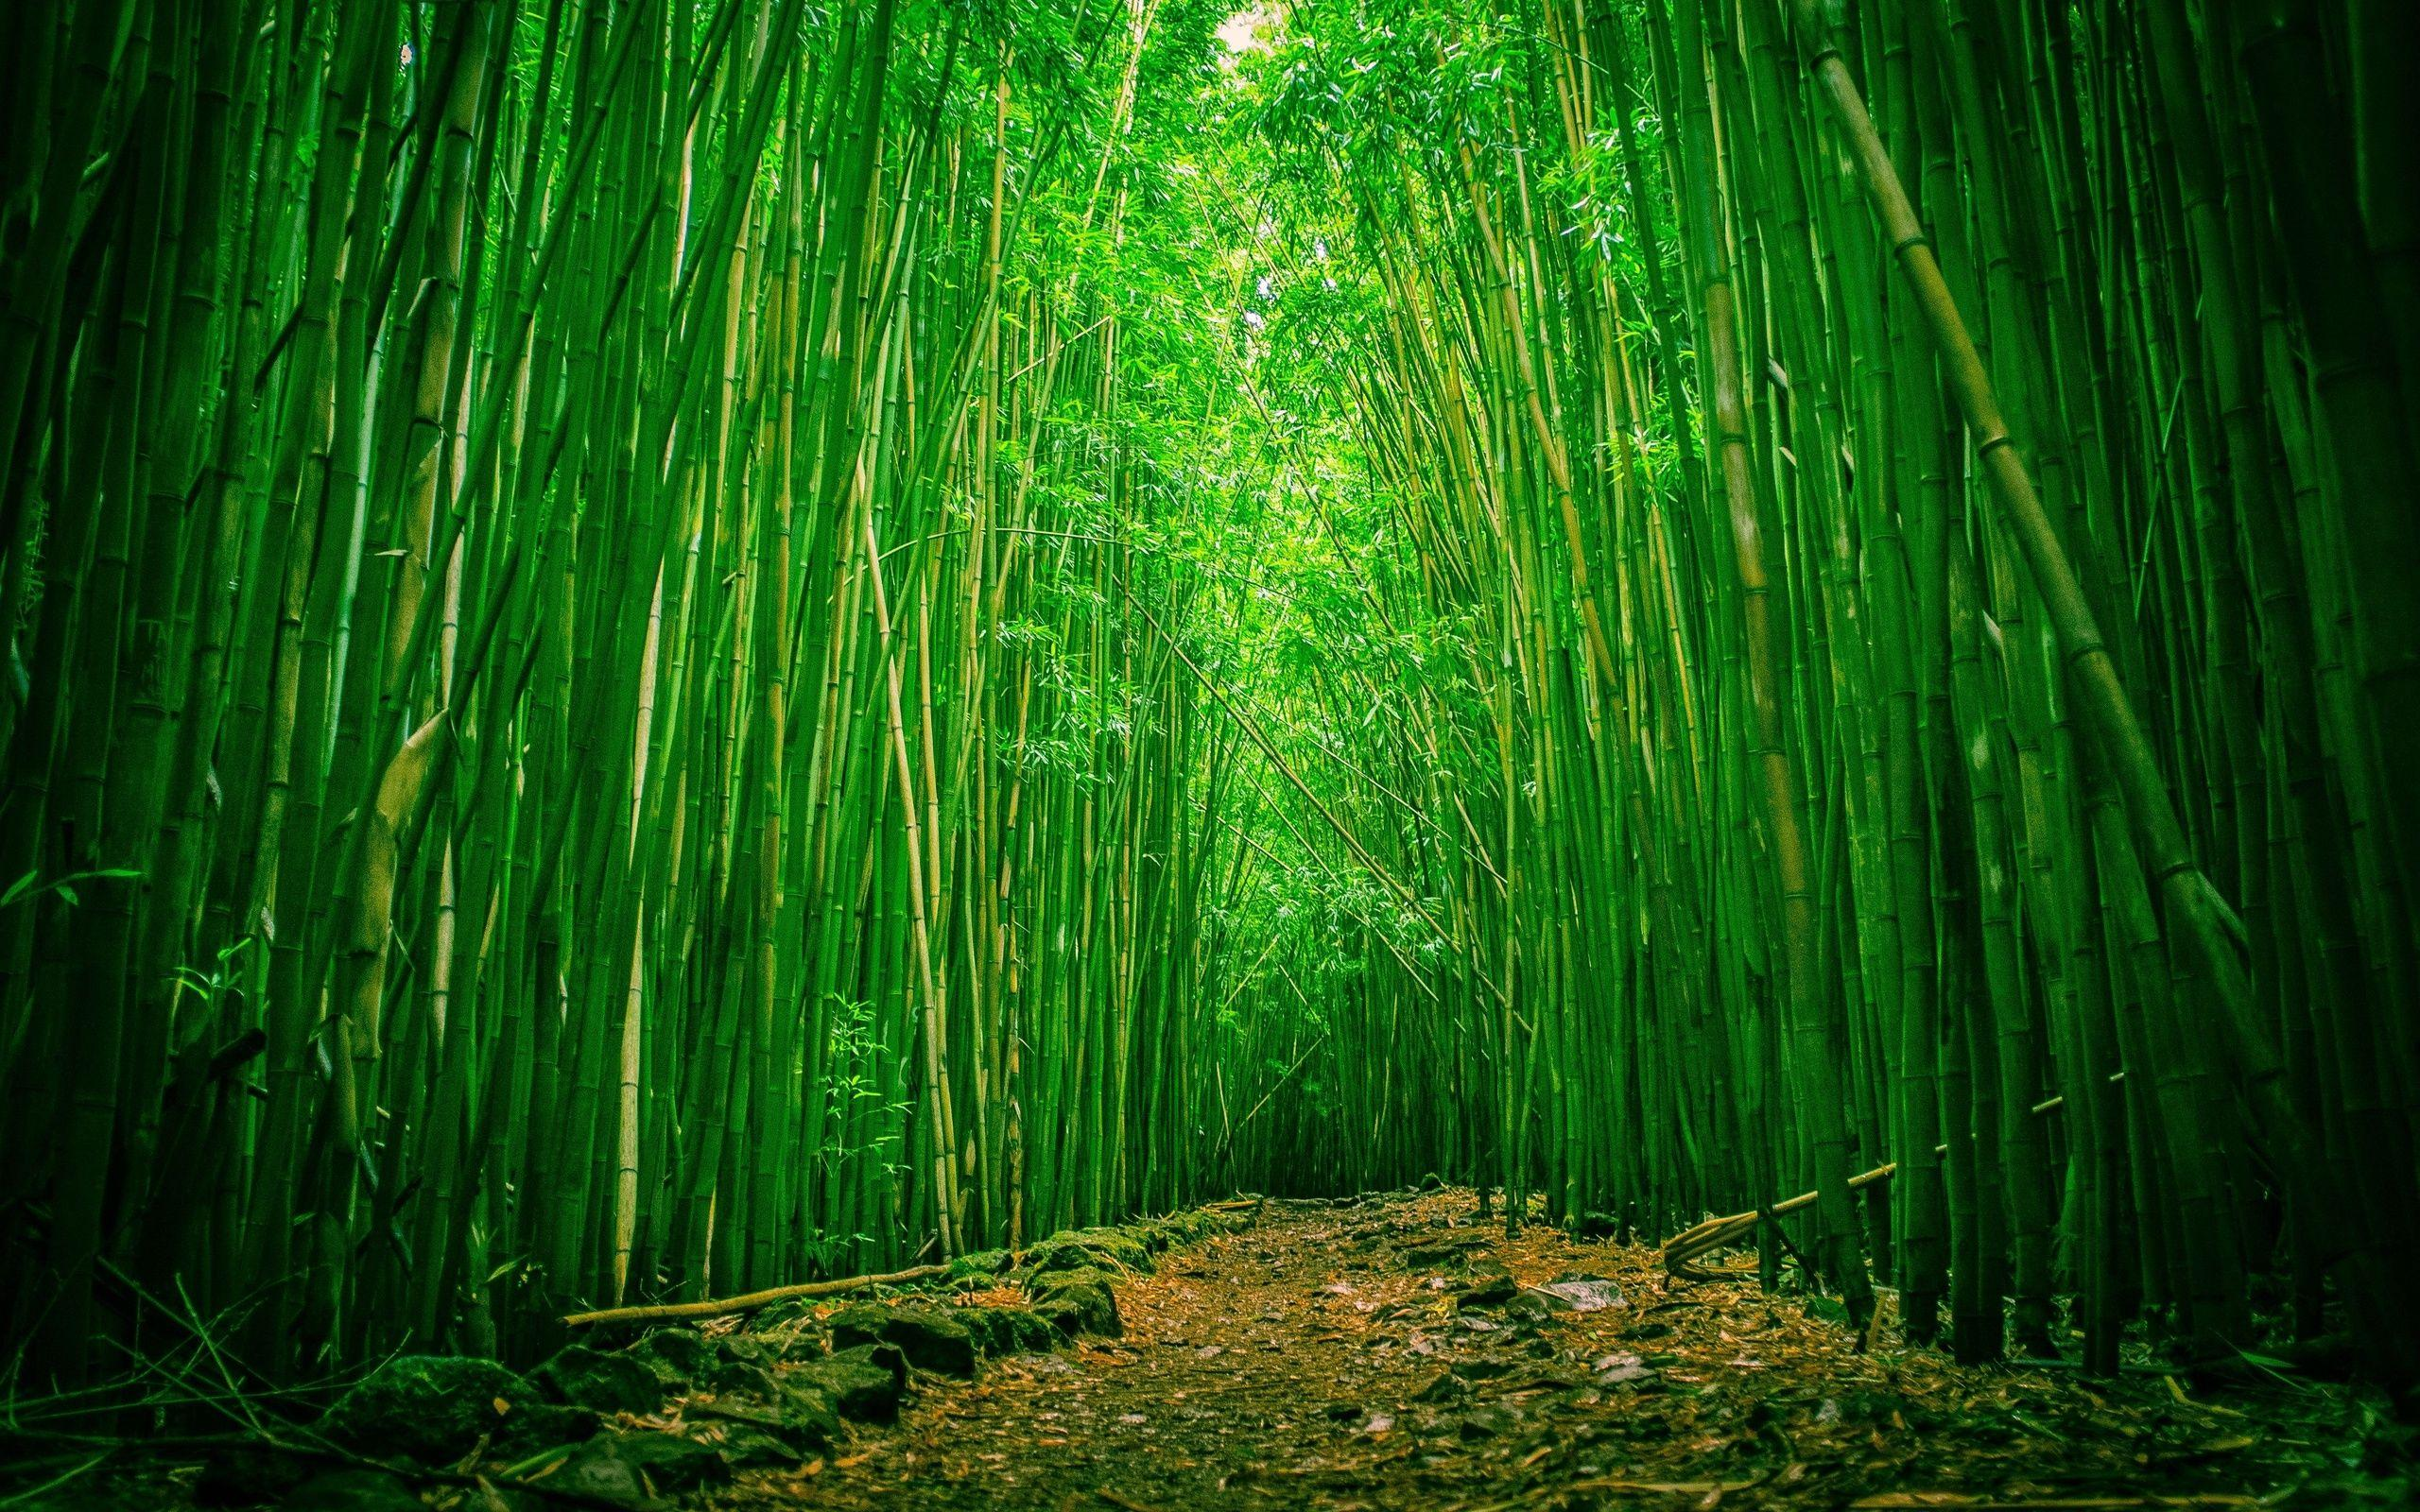 Green Bamboo Forest Wallpapers Wallpaper Cave